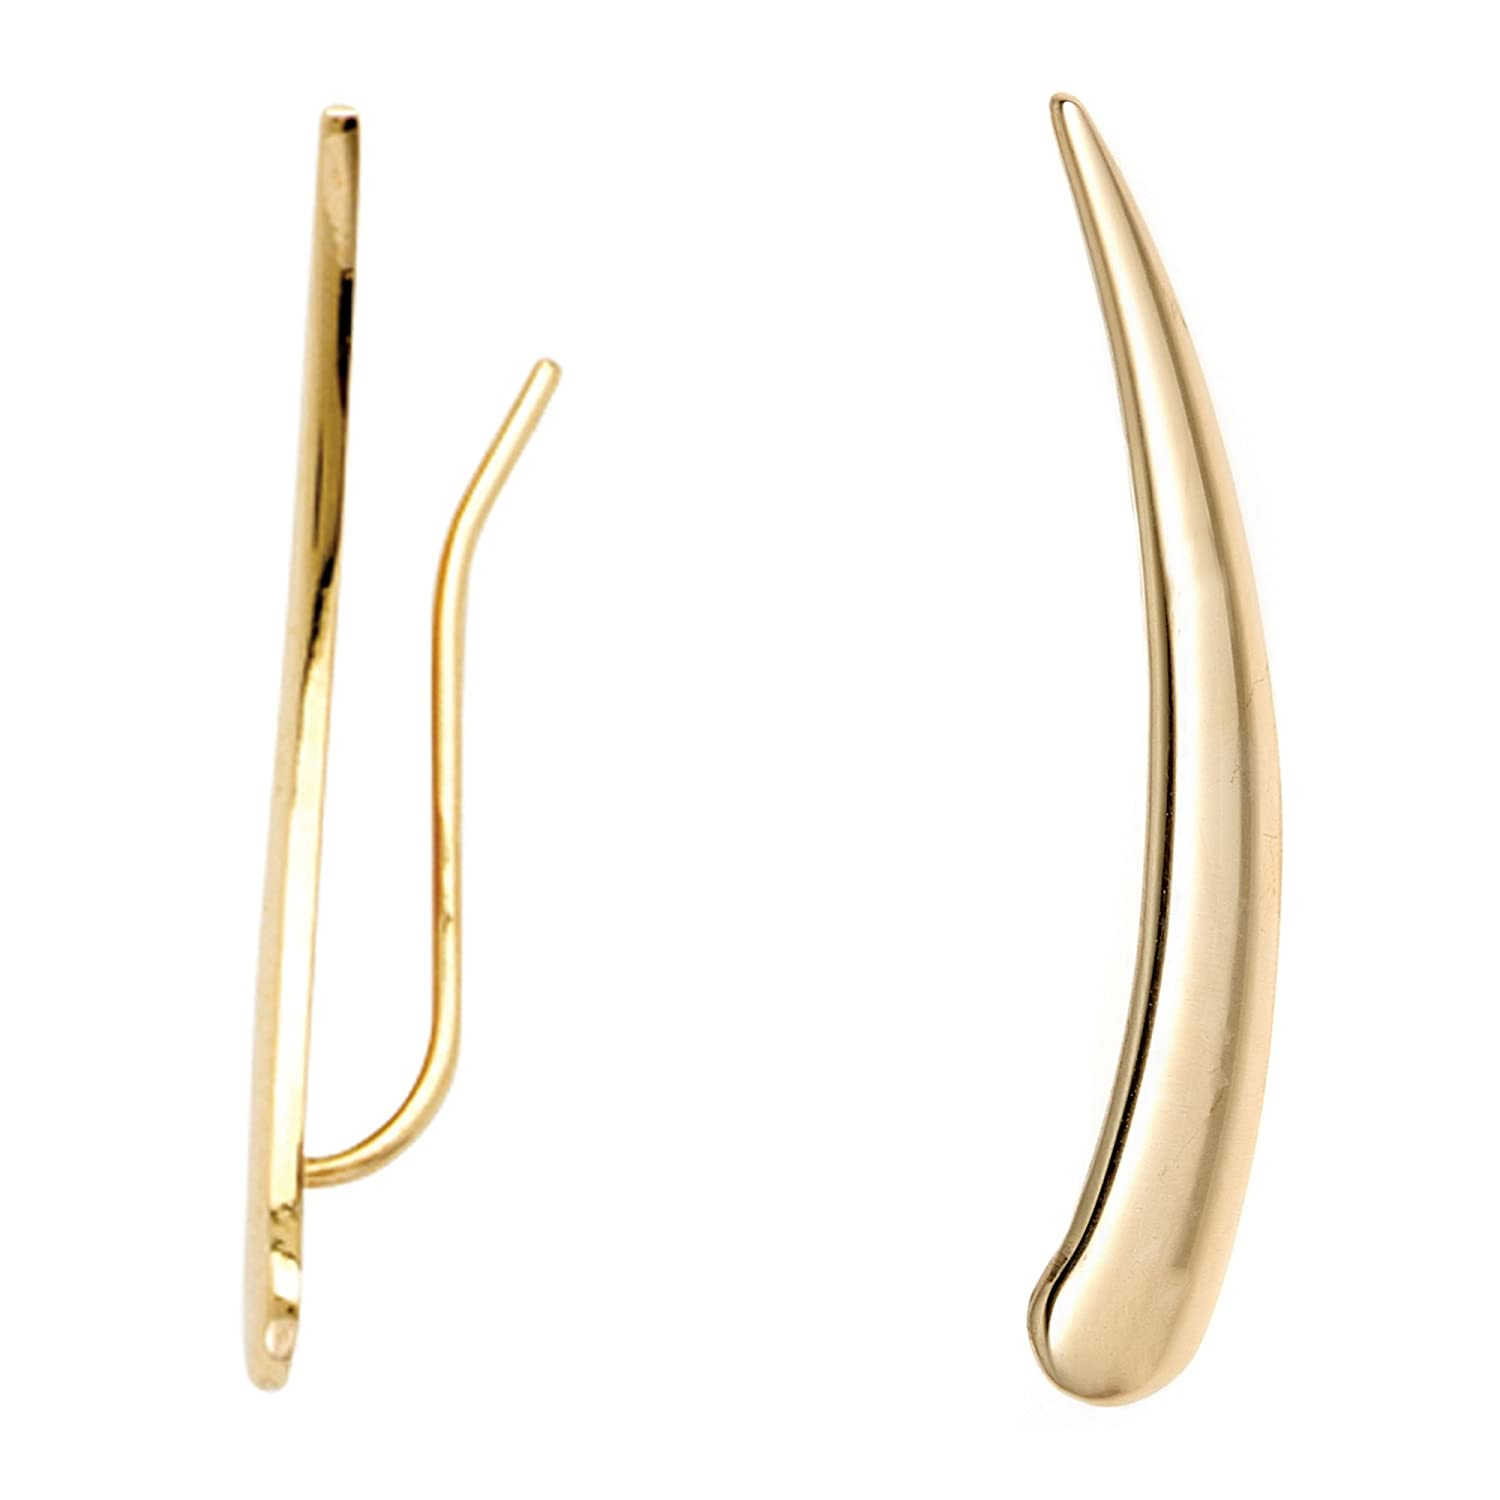 14k Yellow Gold Flat Curved Ear Climber Crawler Earrings 29 Mm Ritastephens